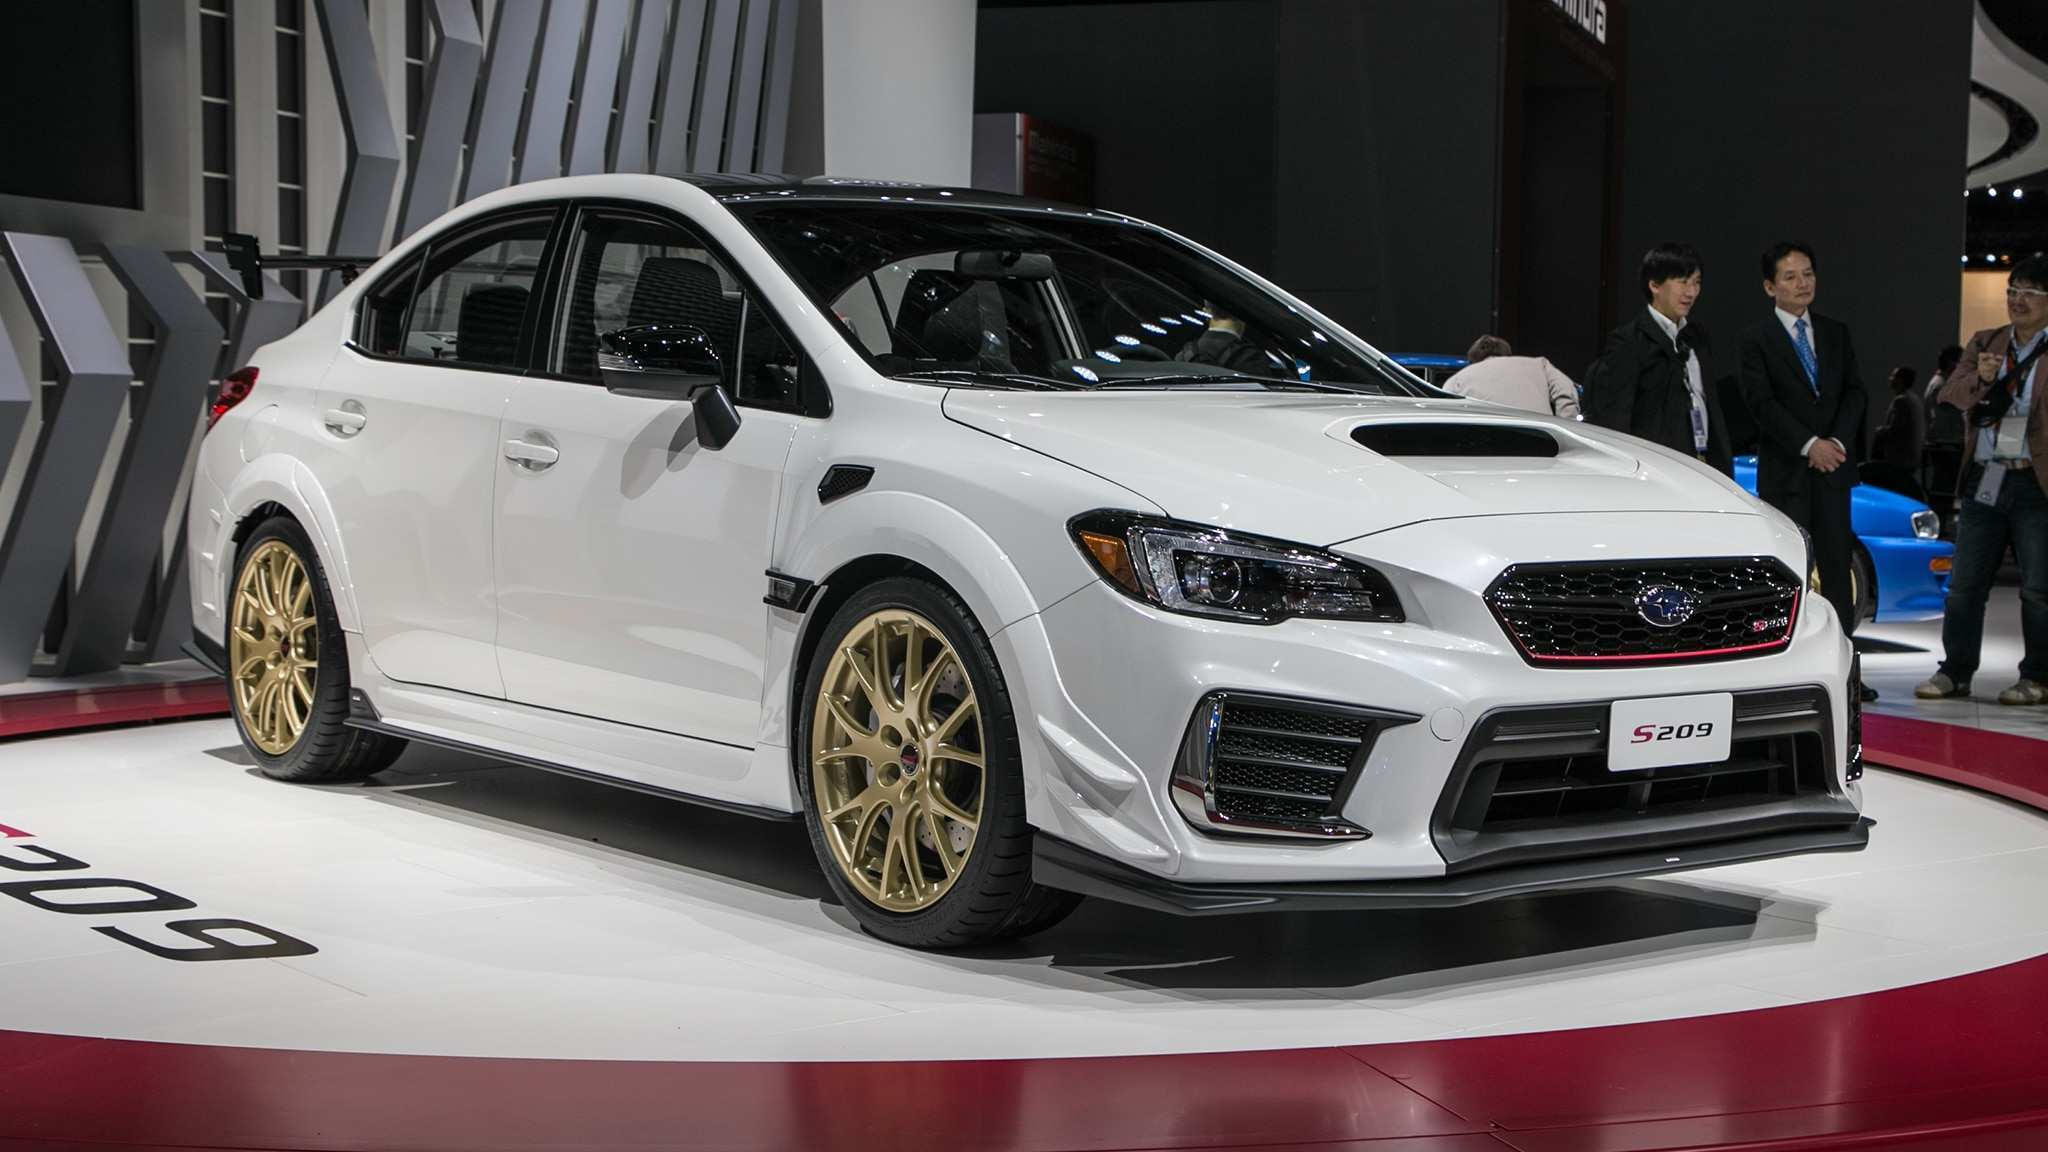 46 New The 2019 Subaru Wrx Quarter Mile Price And Review Performance by The 2019 Subaru Wrx Quarter Mile Price And Review